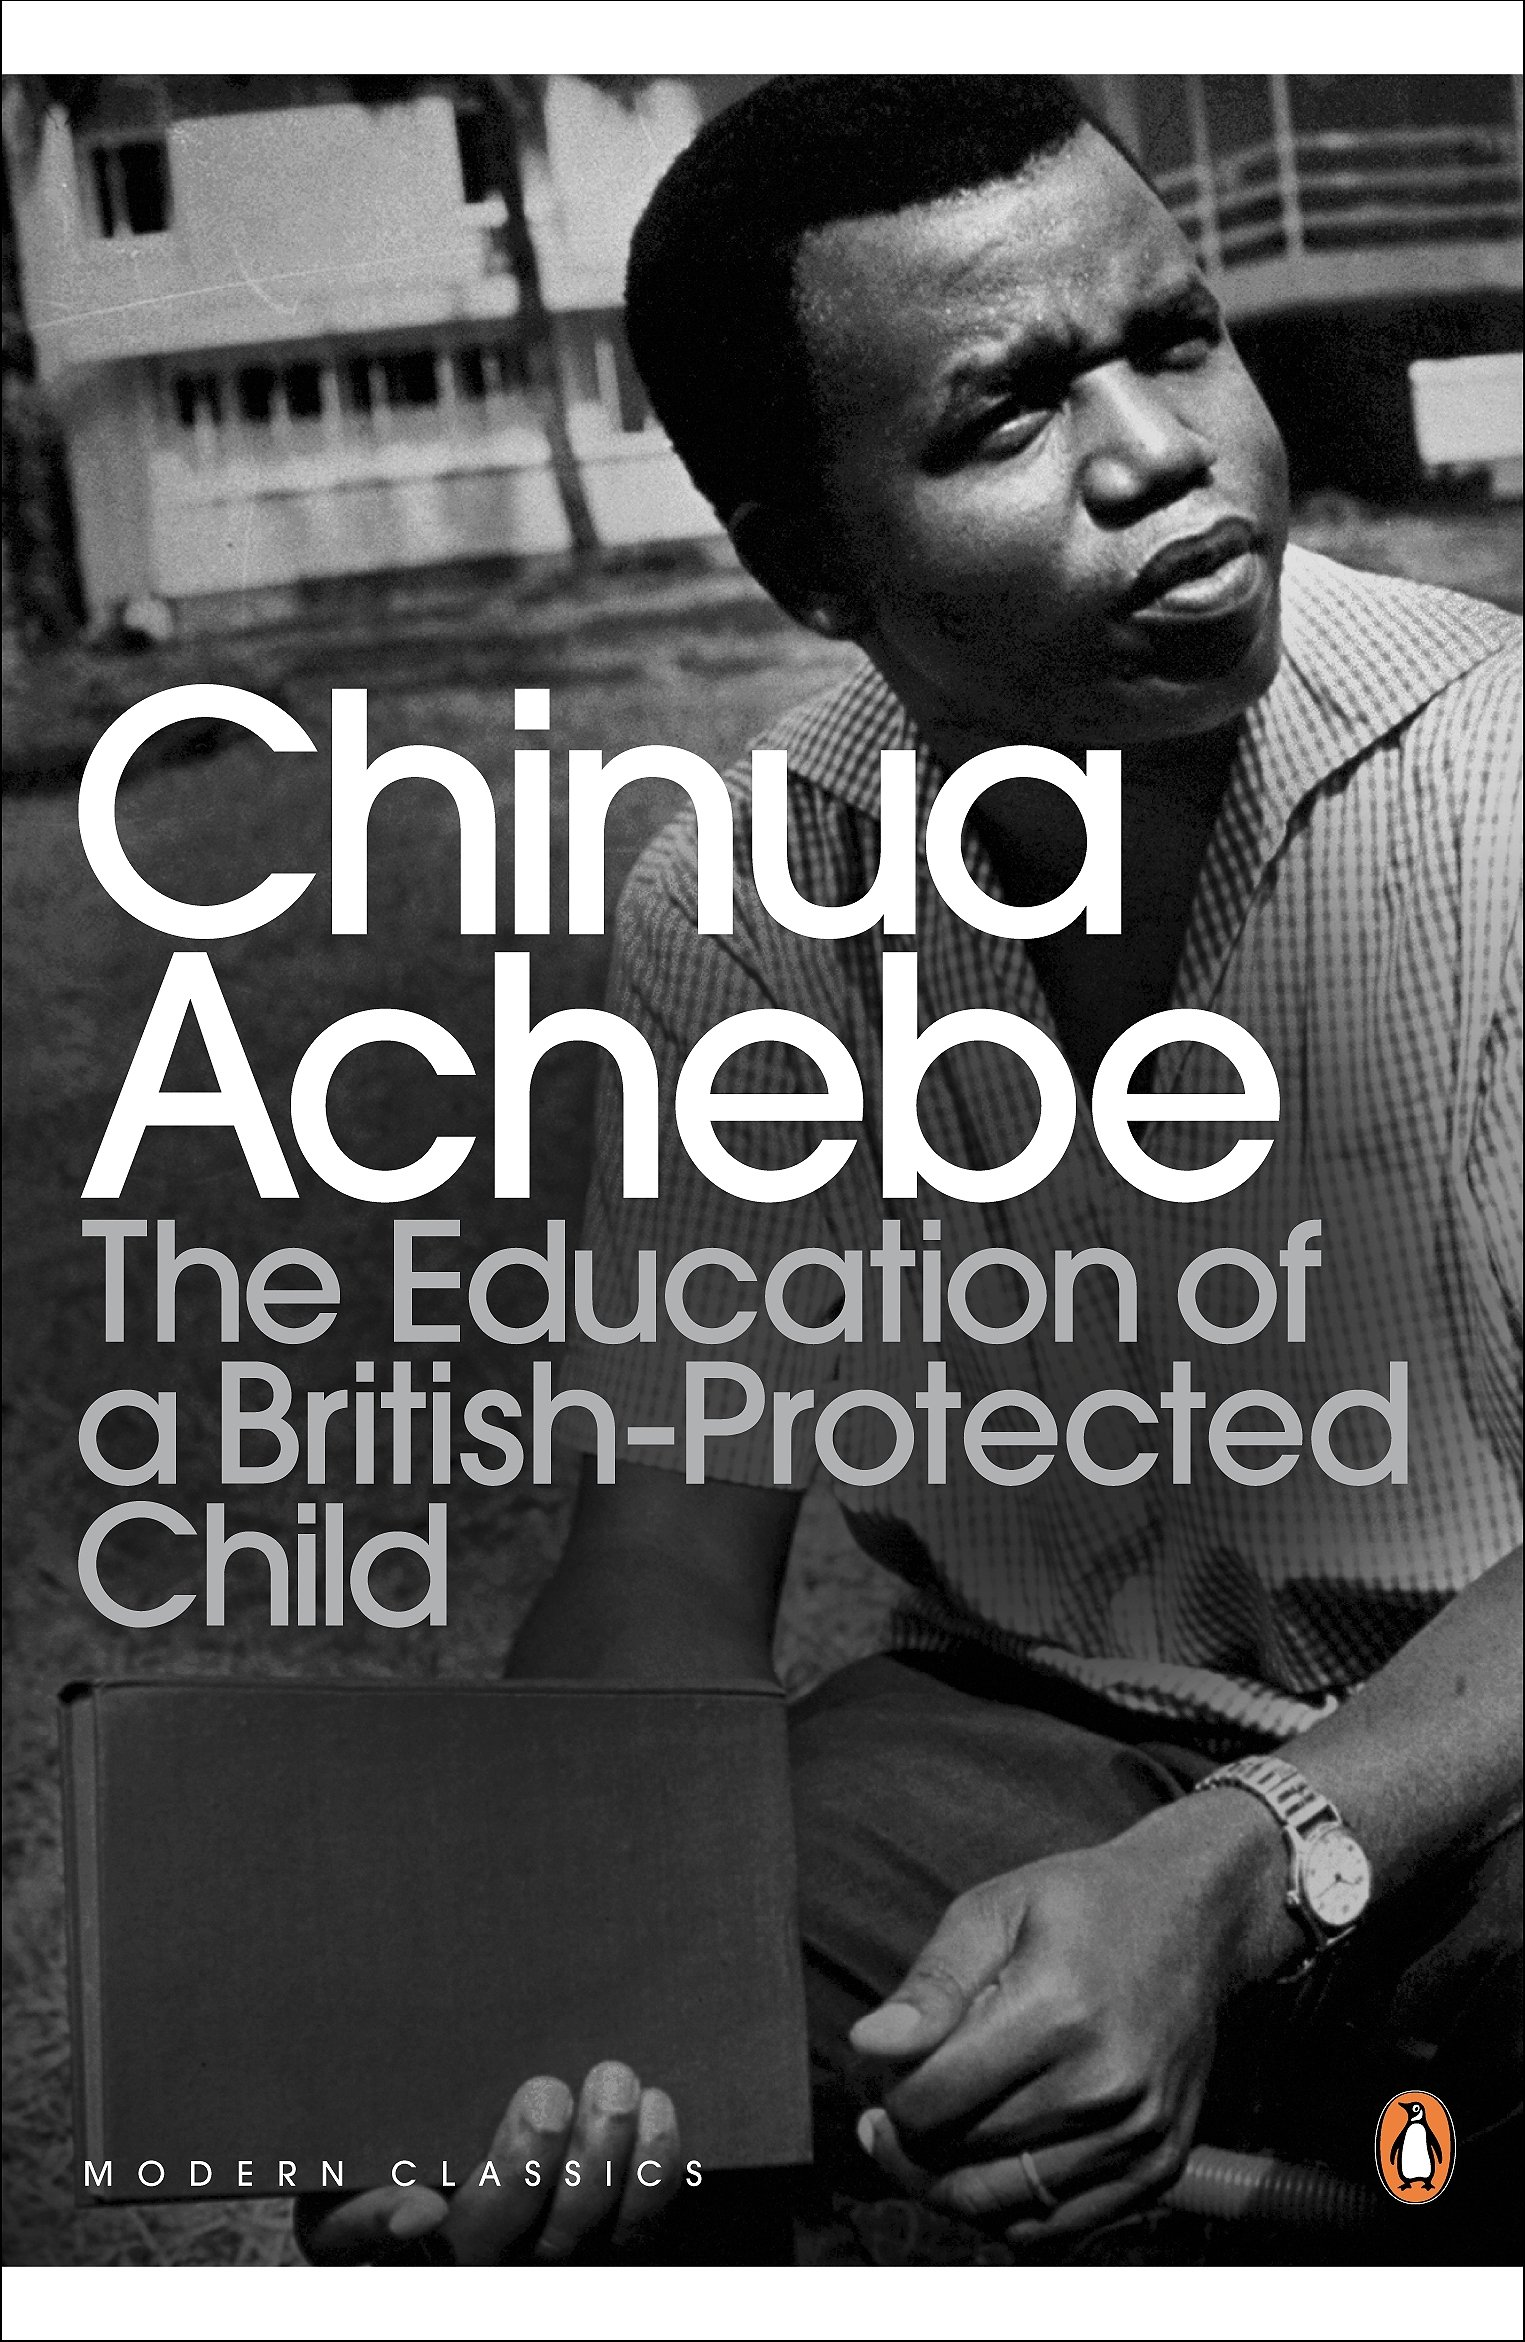 The Education of a British-Protected Child (Penguin Modern Classics) PDF